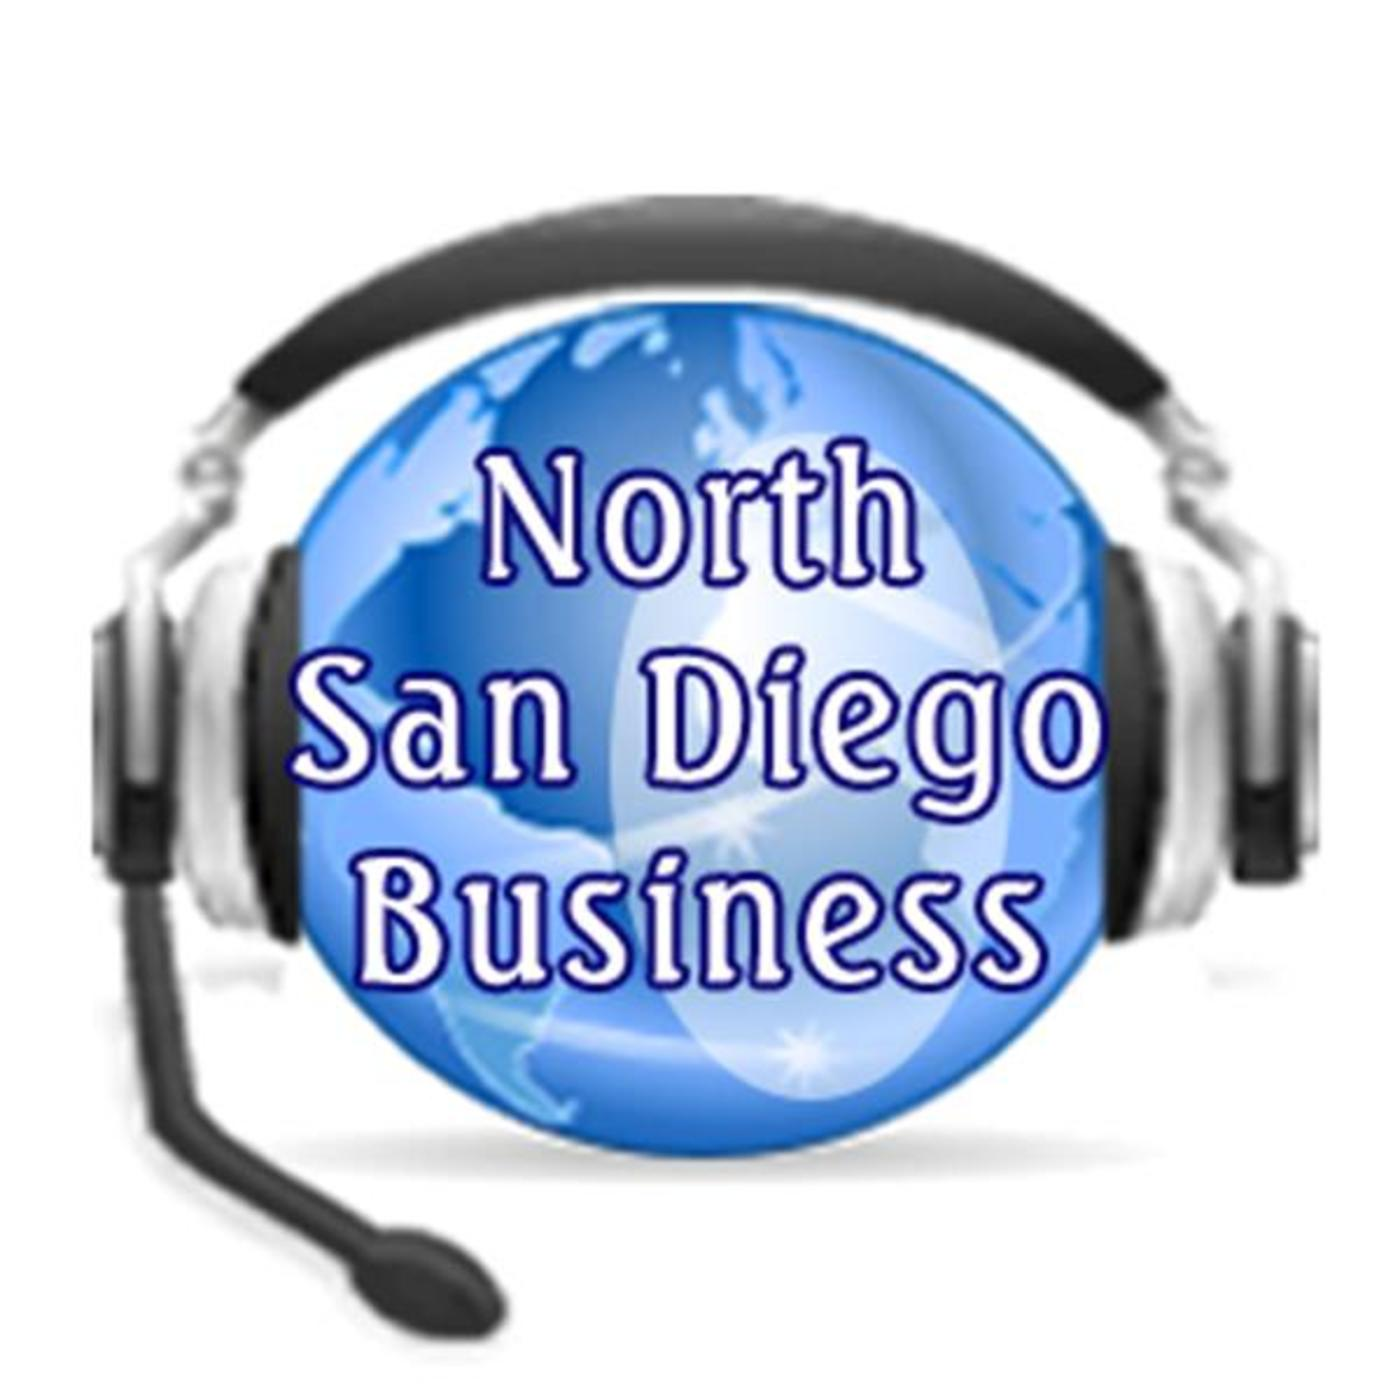 North San Diego Business